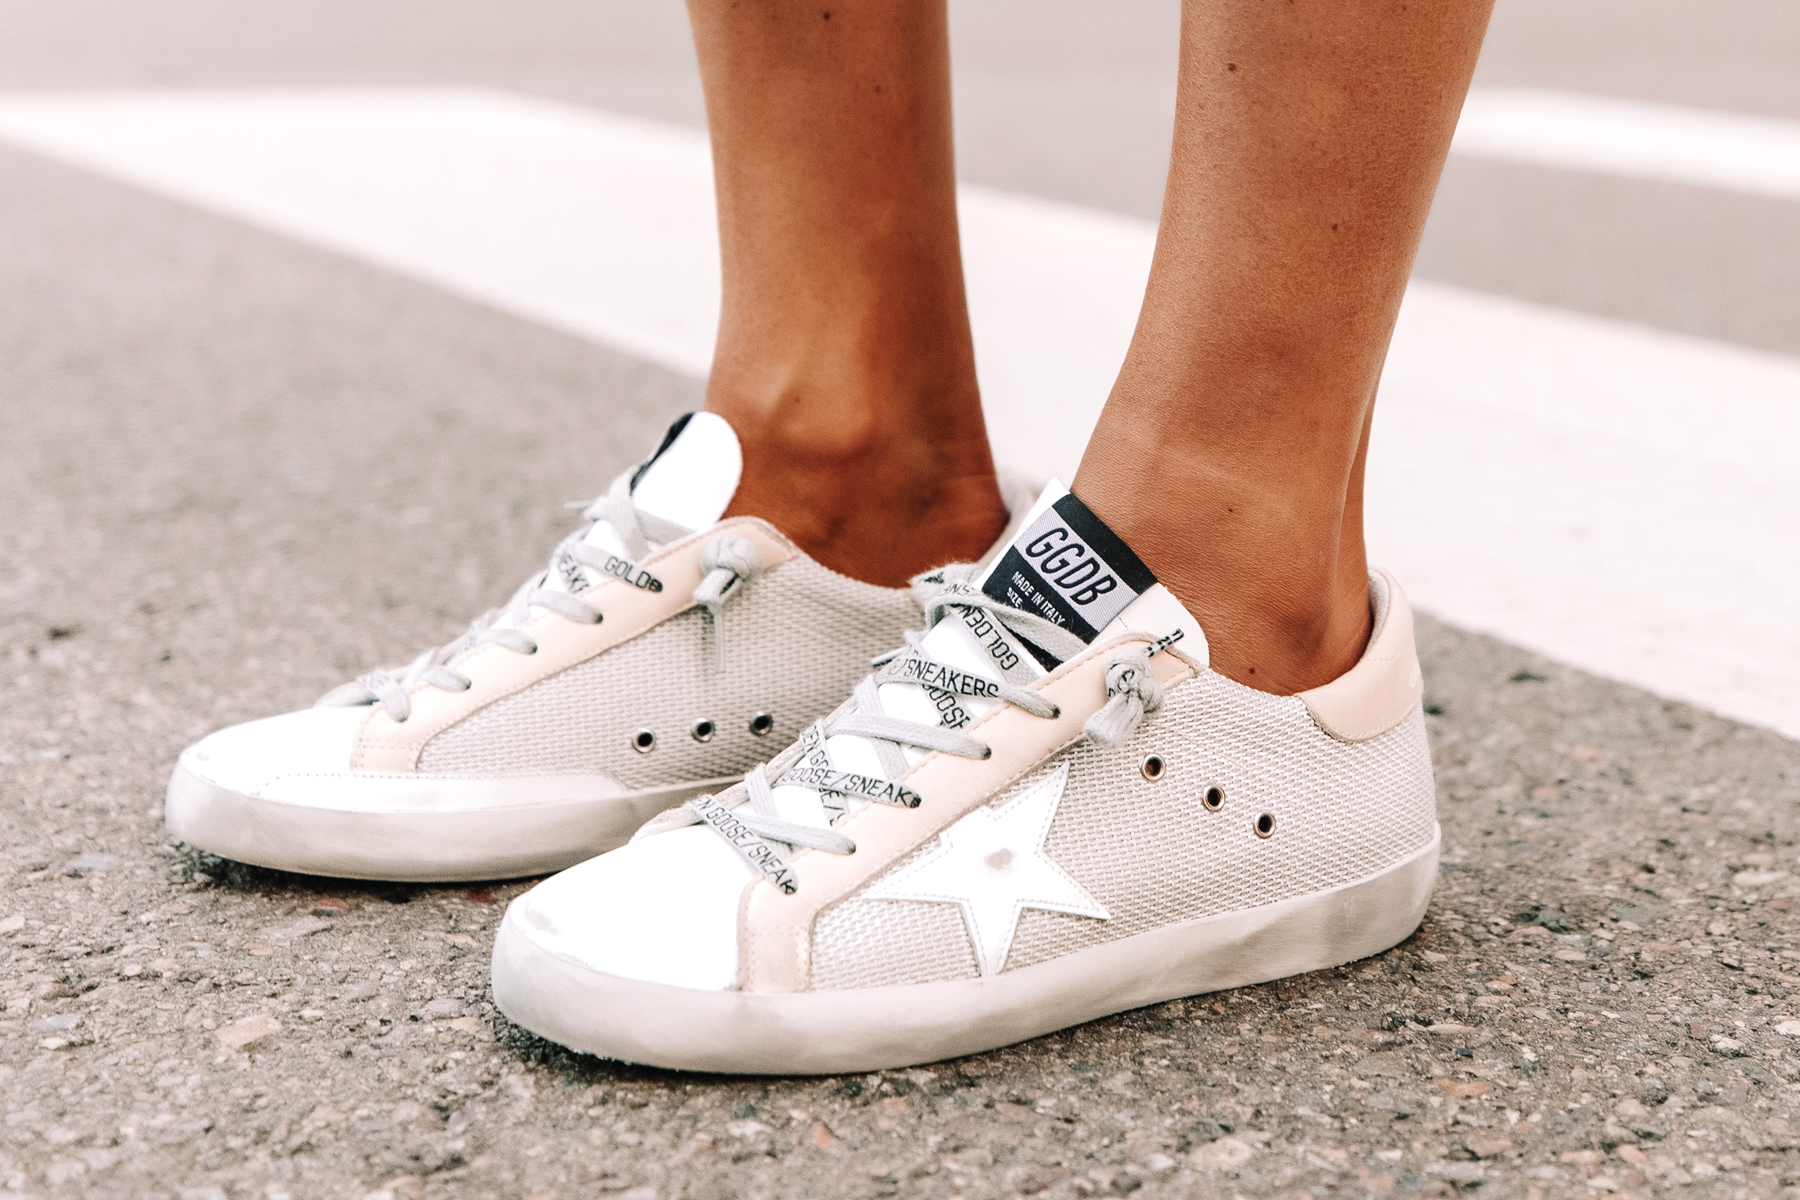 Fashion Jackson Wearing Golden Goose Super-Star Private Edition Woven Sneakers